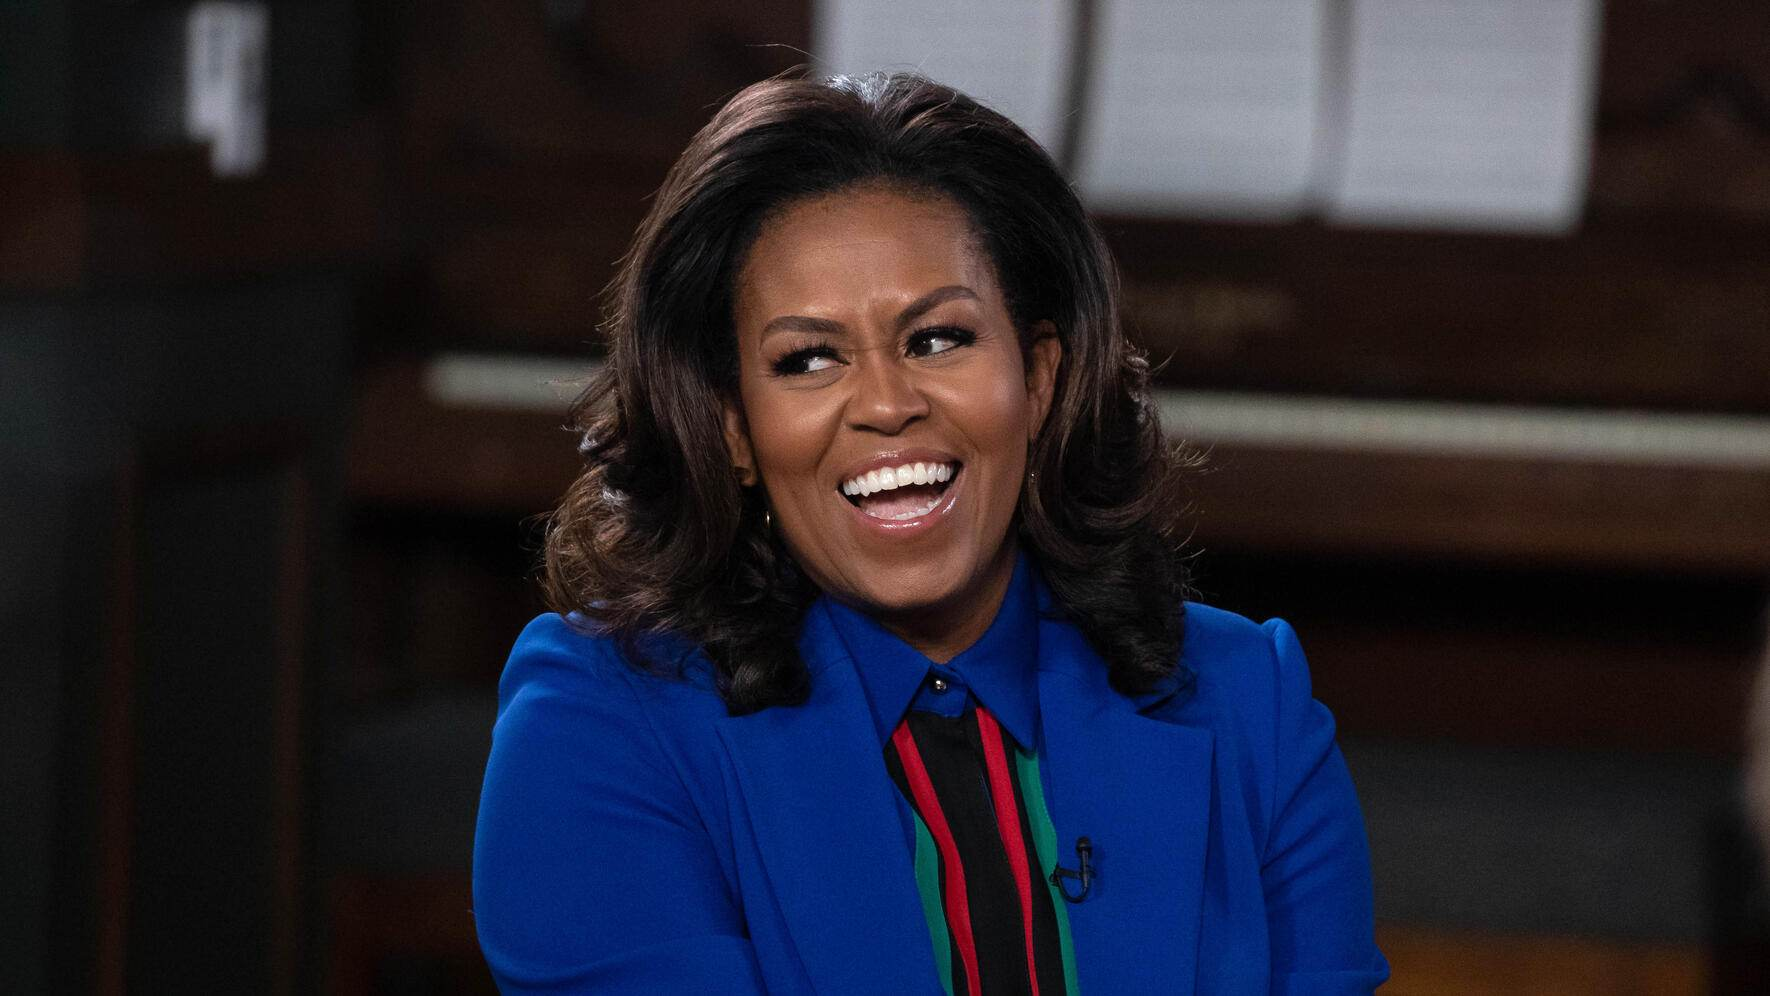 Mandatory Credit: Photo by Suzanne Cordeiro/REX/Shutterstock (10124087k)Michelle Obama joins the new YouTube Original learning special 'BookTube' to discuss her best-selling memoir 'Becoming' with a panel of YouTube Creators, including John Green, Jouelzy, Ariel Bissett, Kat O'Keeffe, Jesse George and Franchesca Ramsey.Michelle Obama 'Becoming' book discussion, Austin, USA - 28 Feb 2019